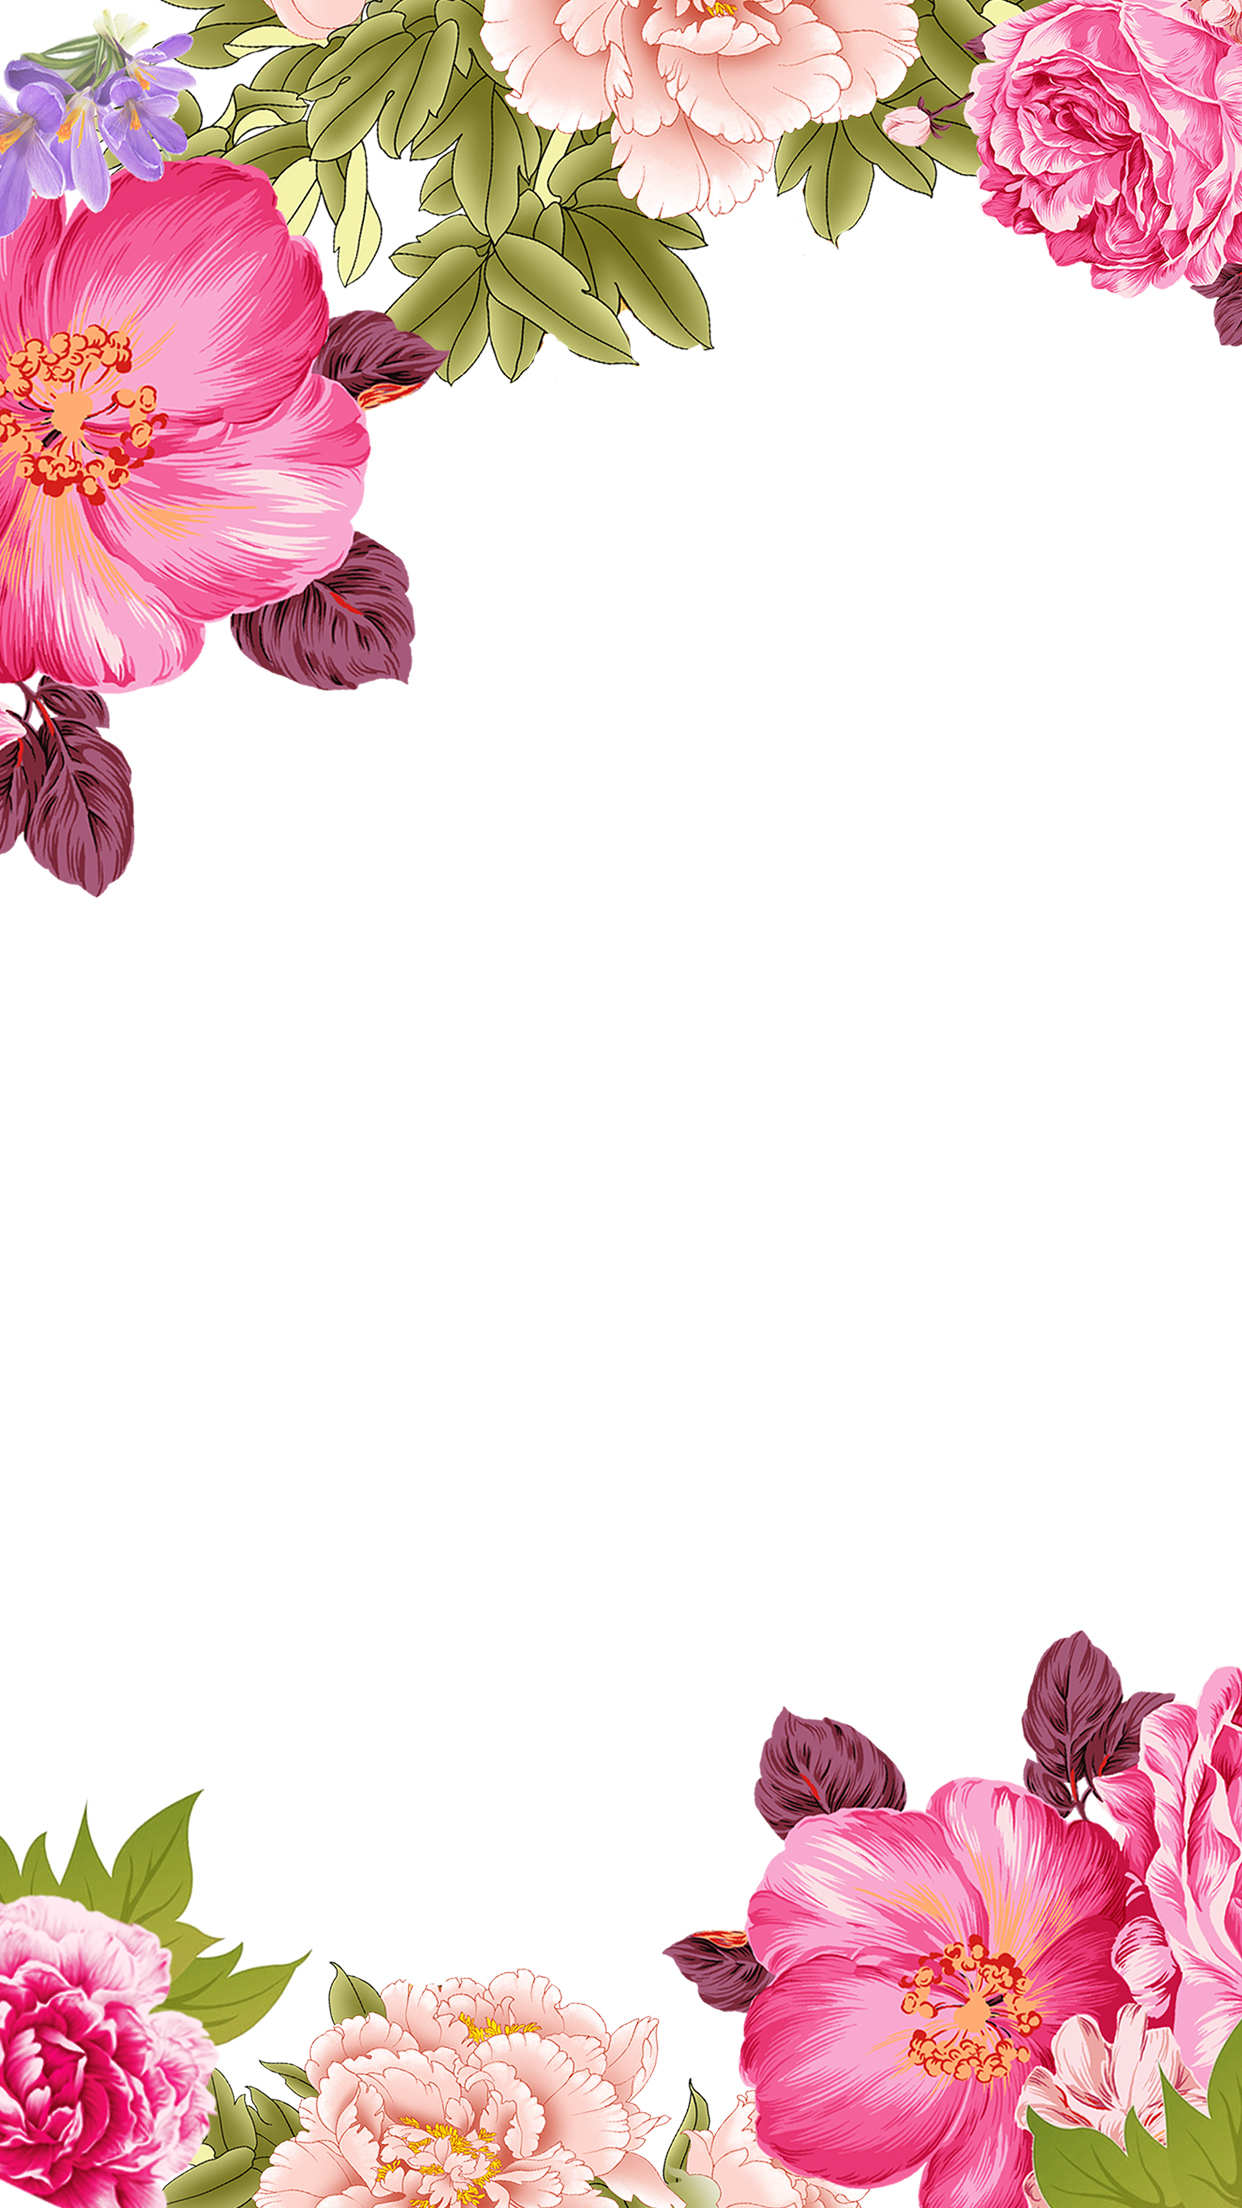 Mo Flowers Flowers Decorative Borders H5 Background Free